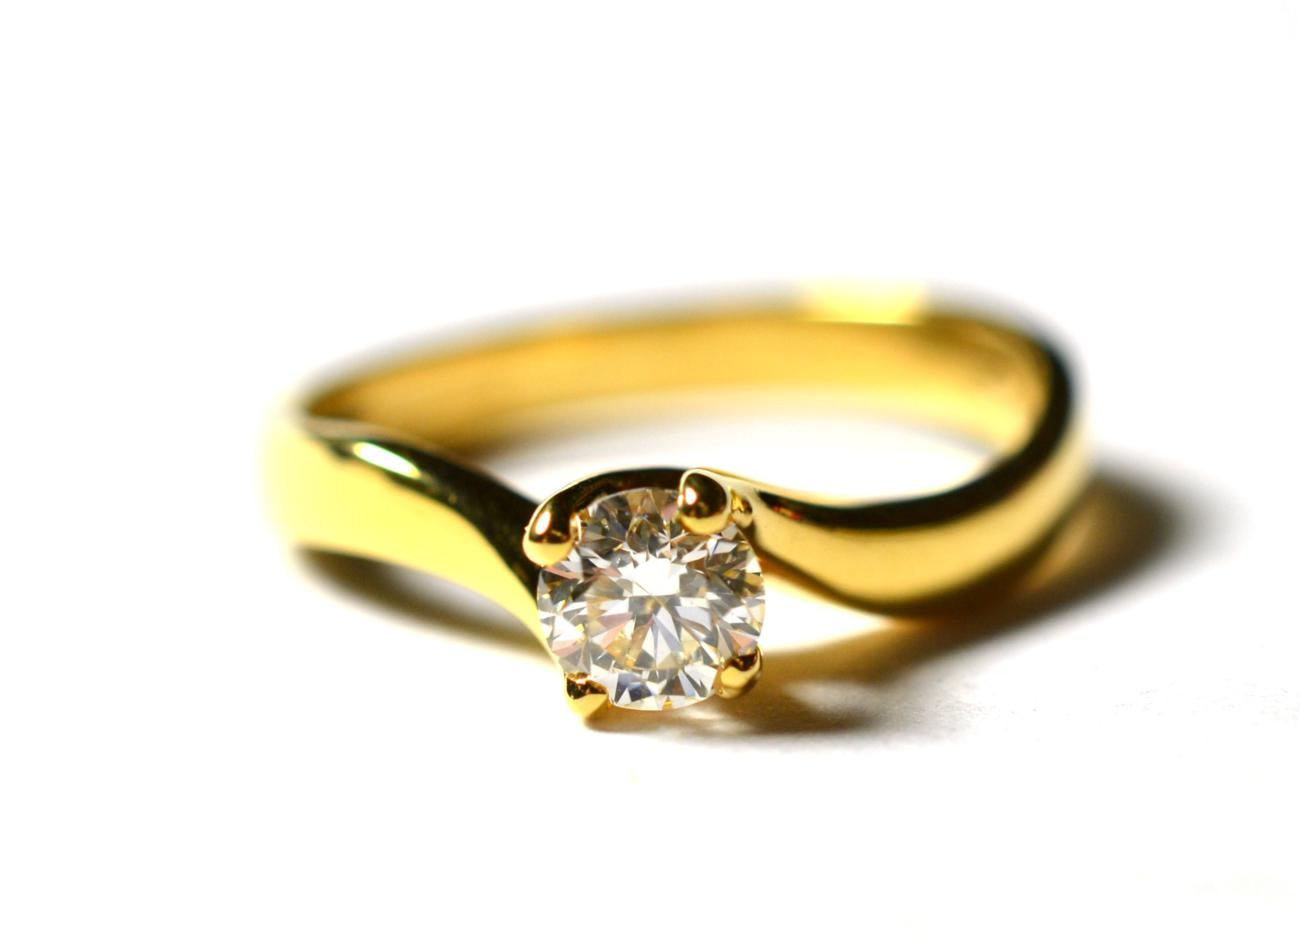 Lot 224 - An 18 carat gold solitaire diamond ring, a round brilliant cut diamond in a yellow claw setting, to